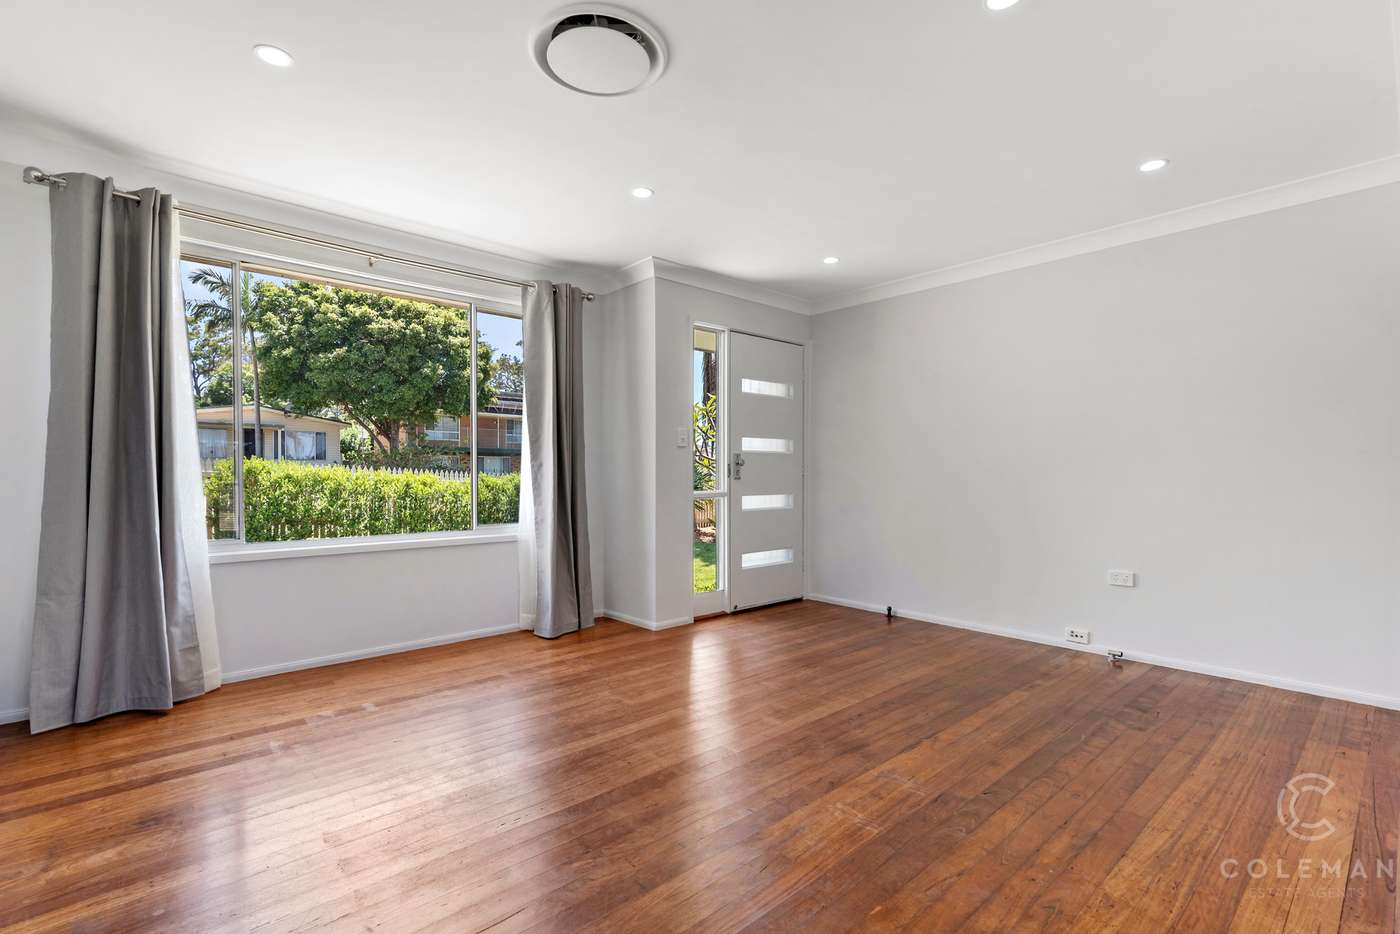 Sixth view of Homely house listing, 16 Tingira Street, Charmhaven NSW 2263